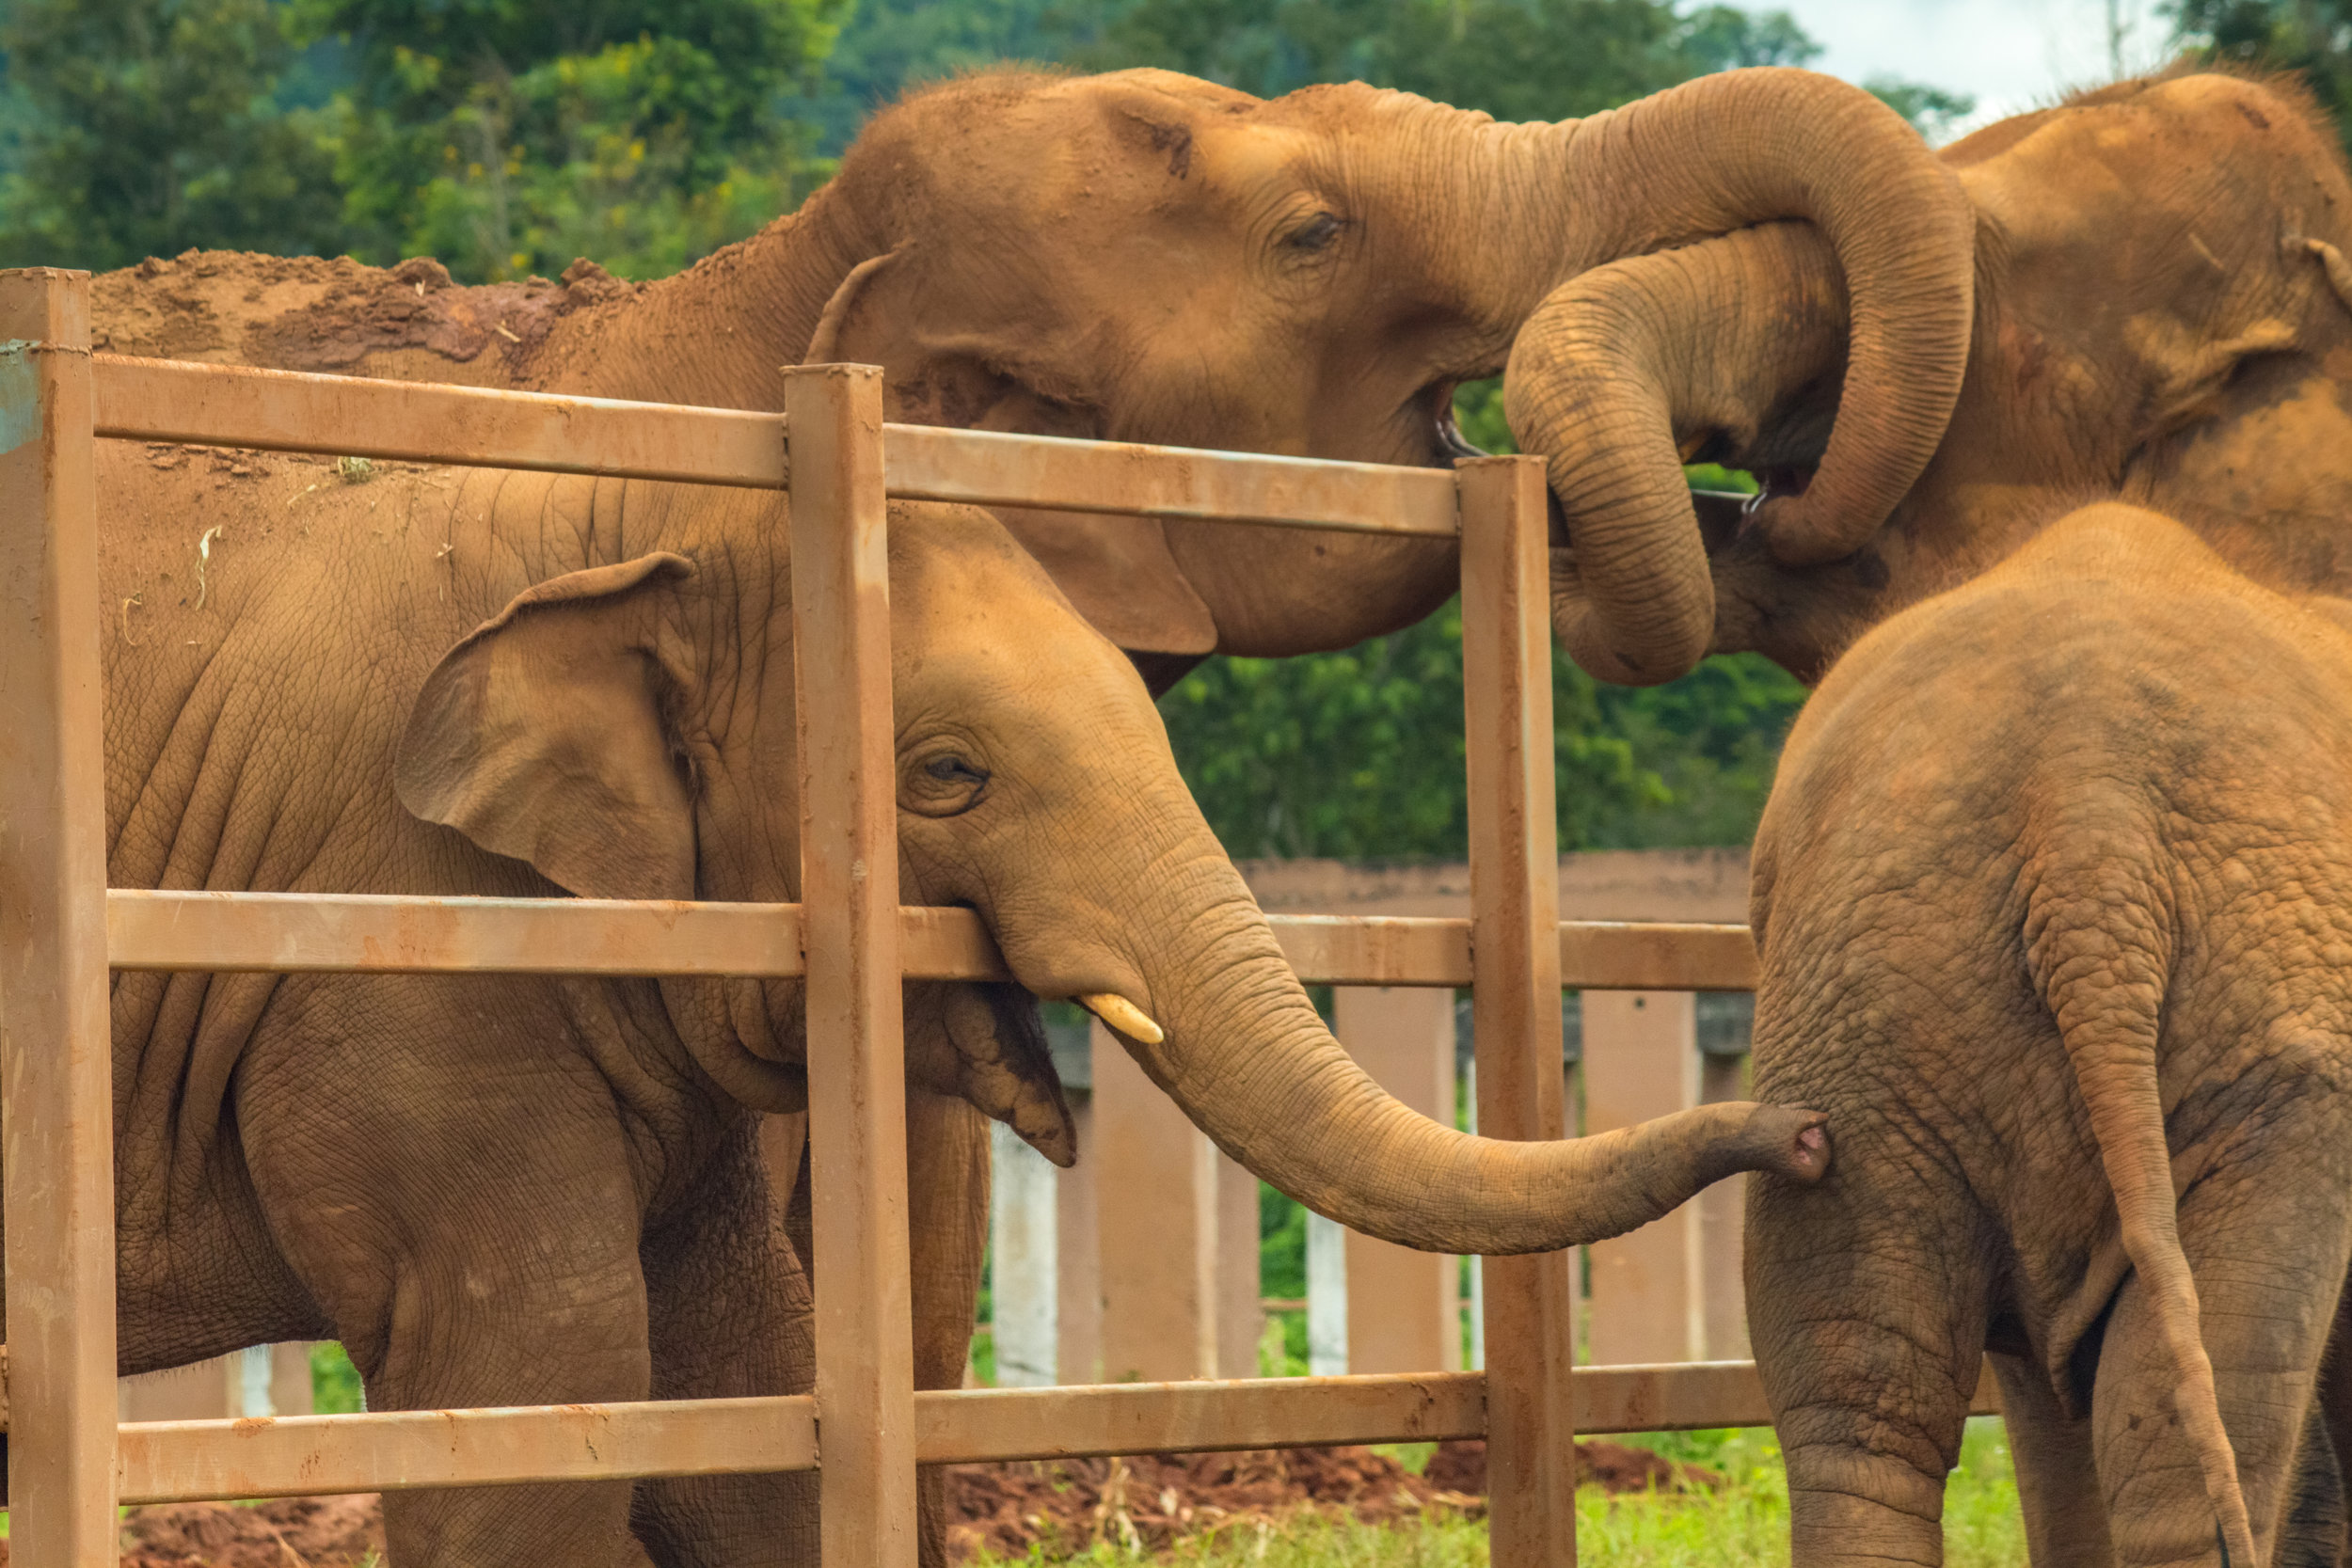 Elephants greet each other through their enclosures at Elephant Sanctuary Park, Chiang Mai, Thailand.